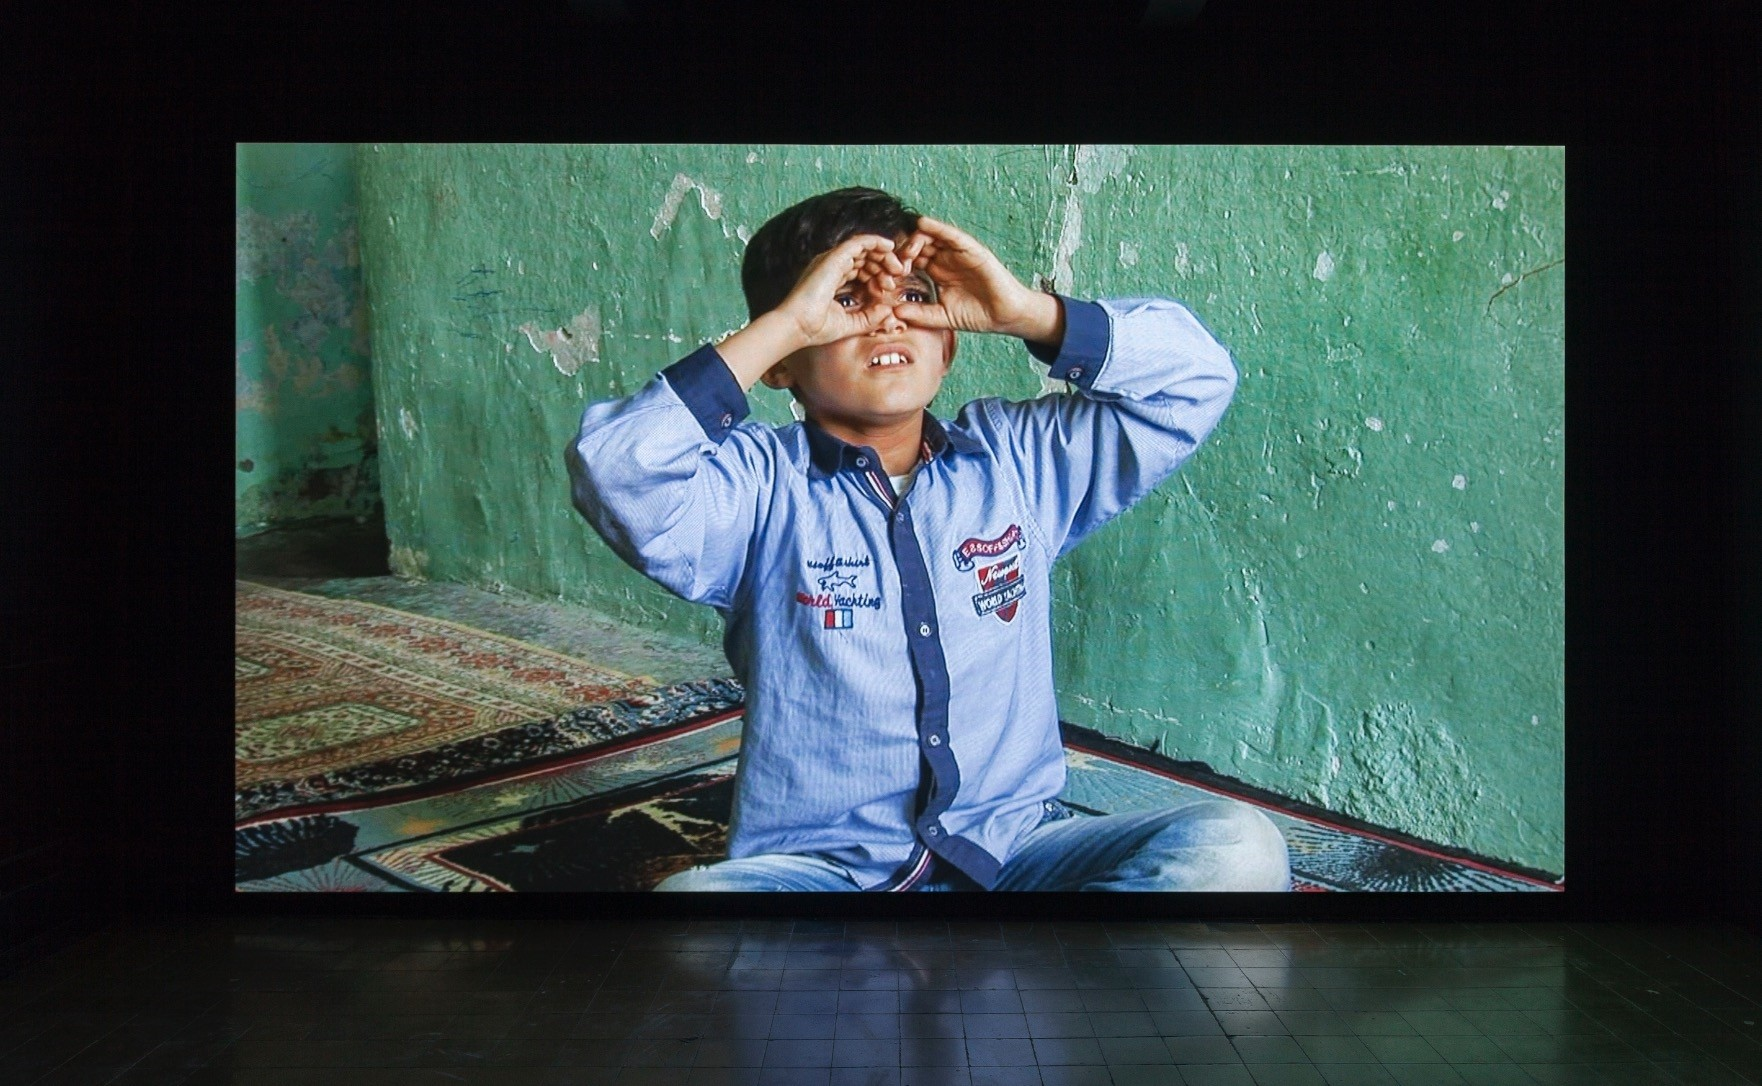 Erkan u00d6zgenu2019s u201cWonderlandu201d (2016) video project focuses on the nearly six-year war in Syria. It does not show any images of the war, but the stories are told through a 13-year-old deaf boy who had to flee.